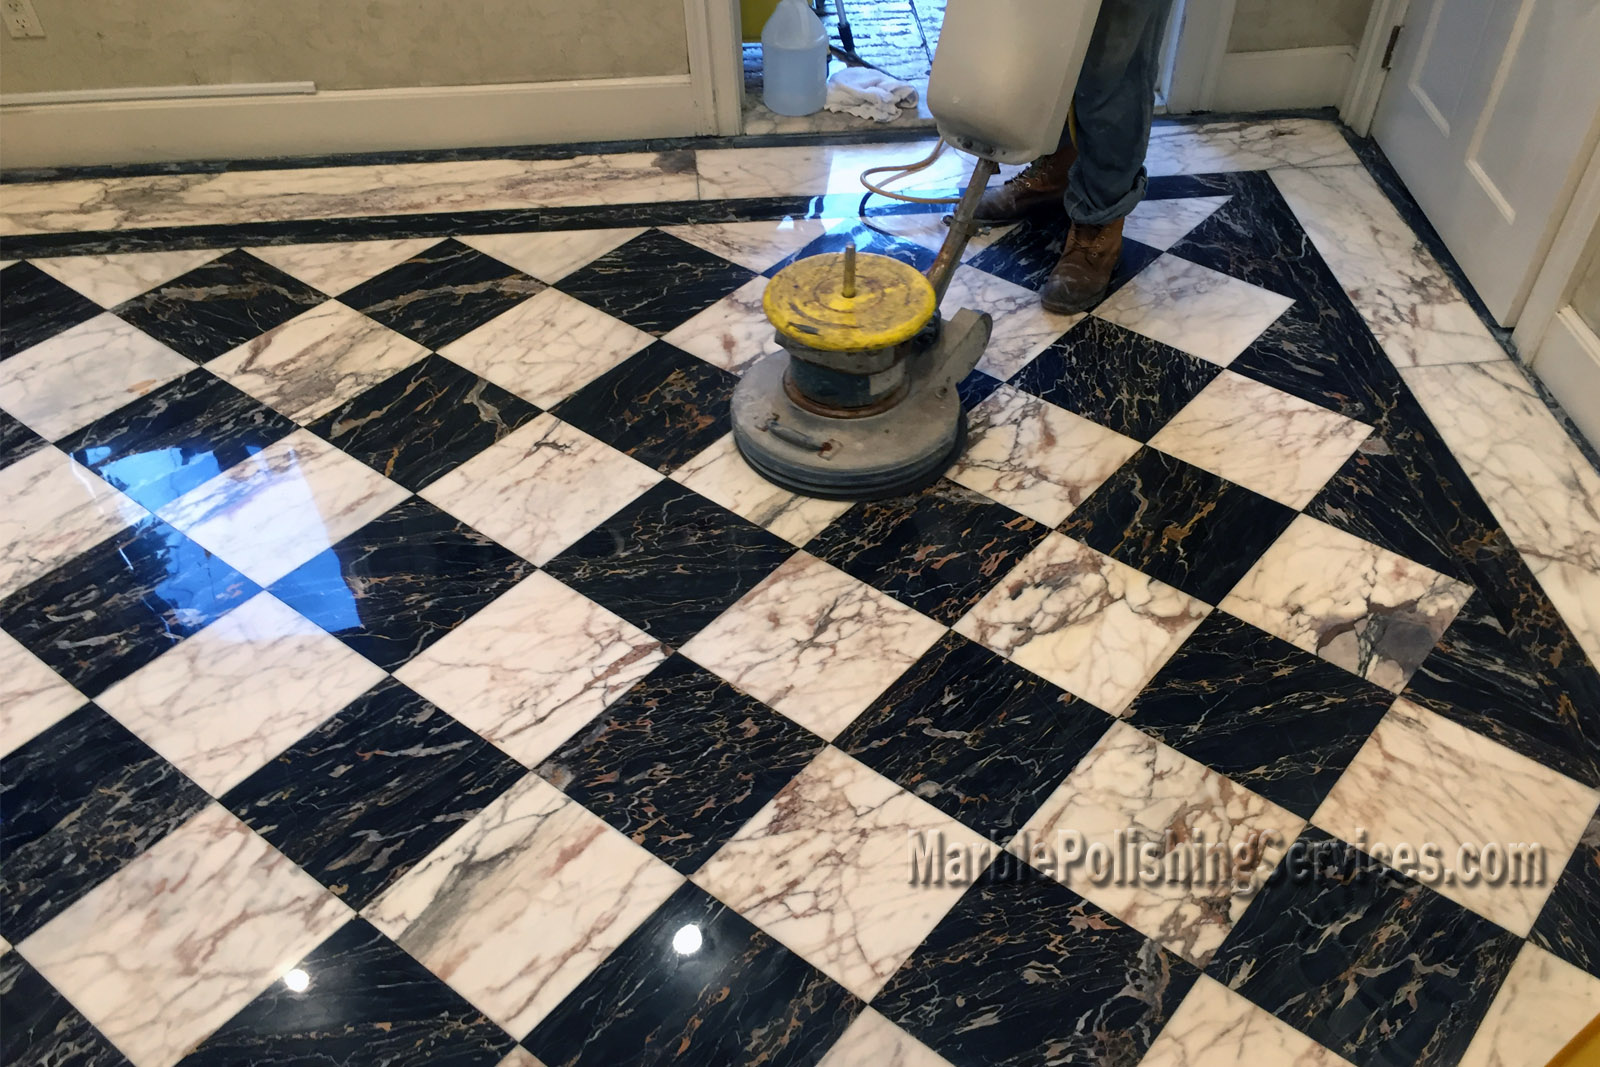 Marble Cleaning Services : Marble polishing gallery services